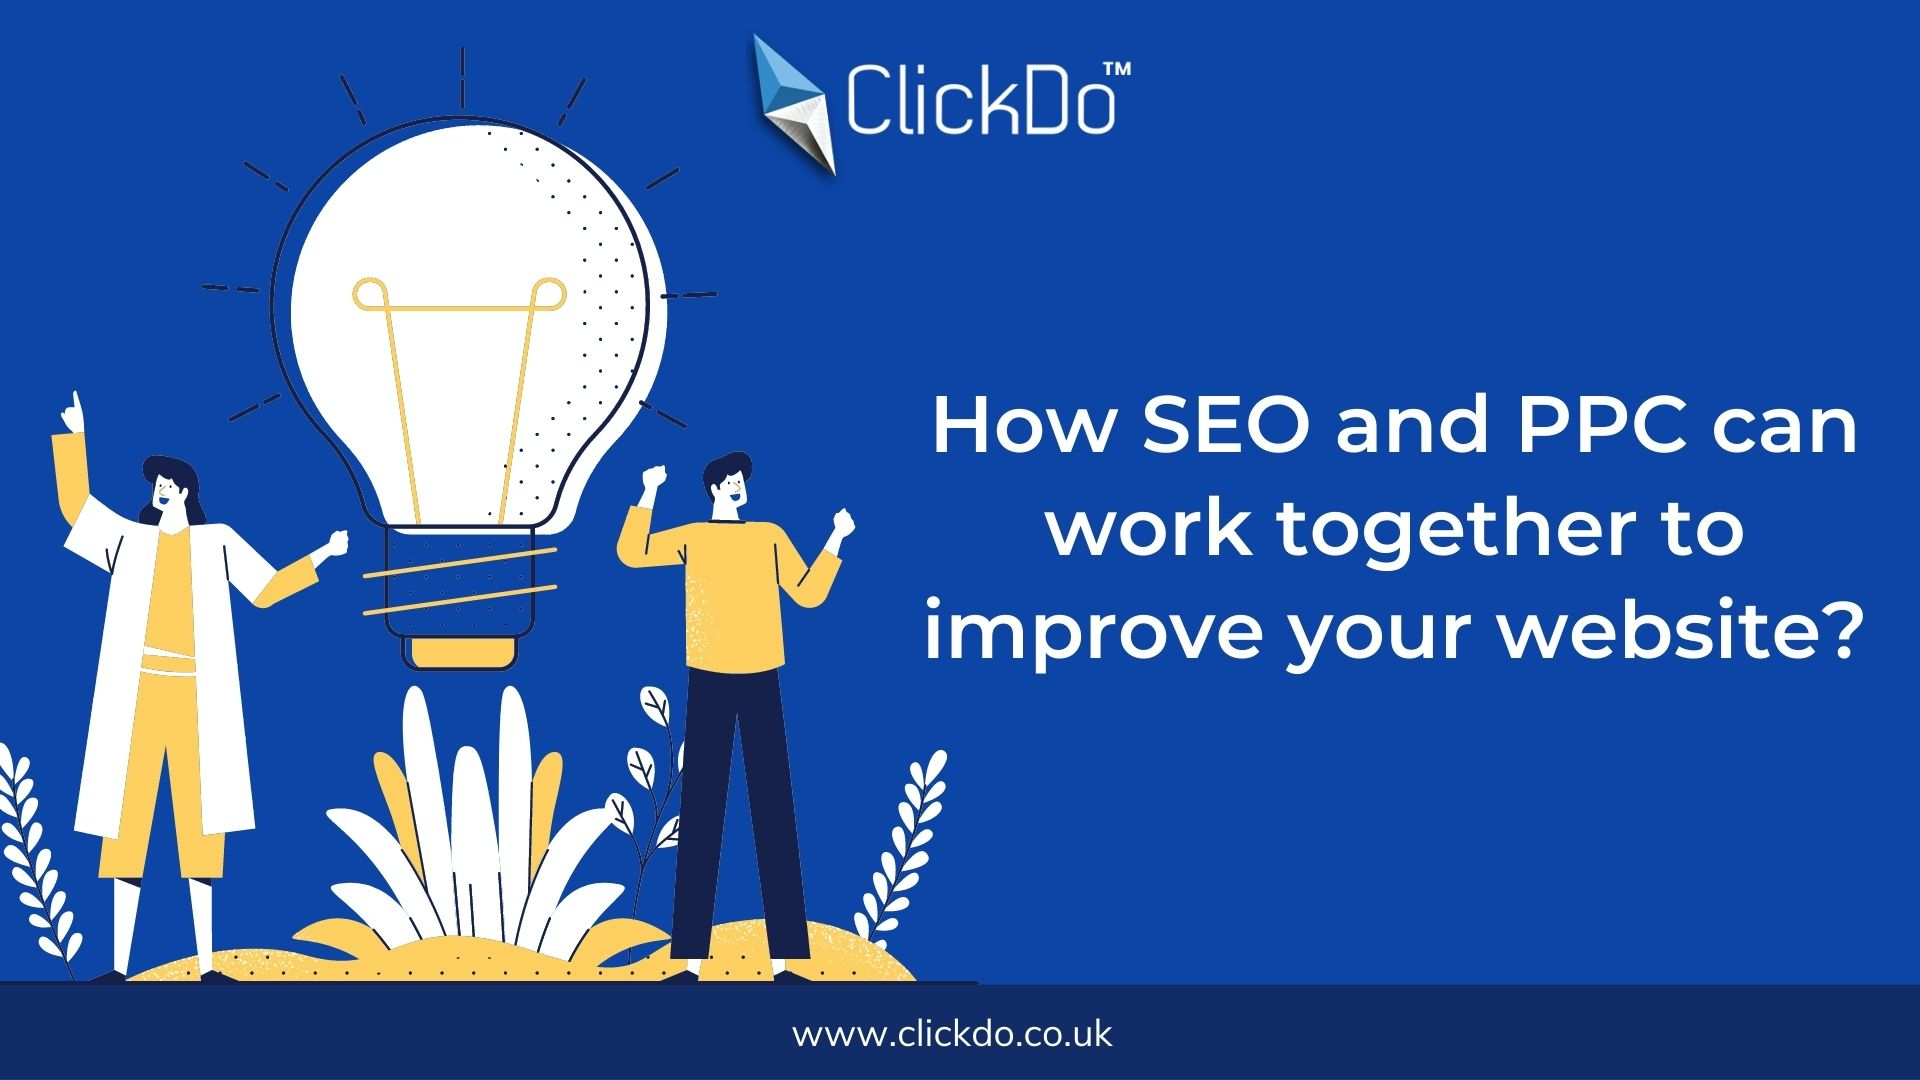 How SEO and PPC can work together to improve your website